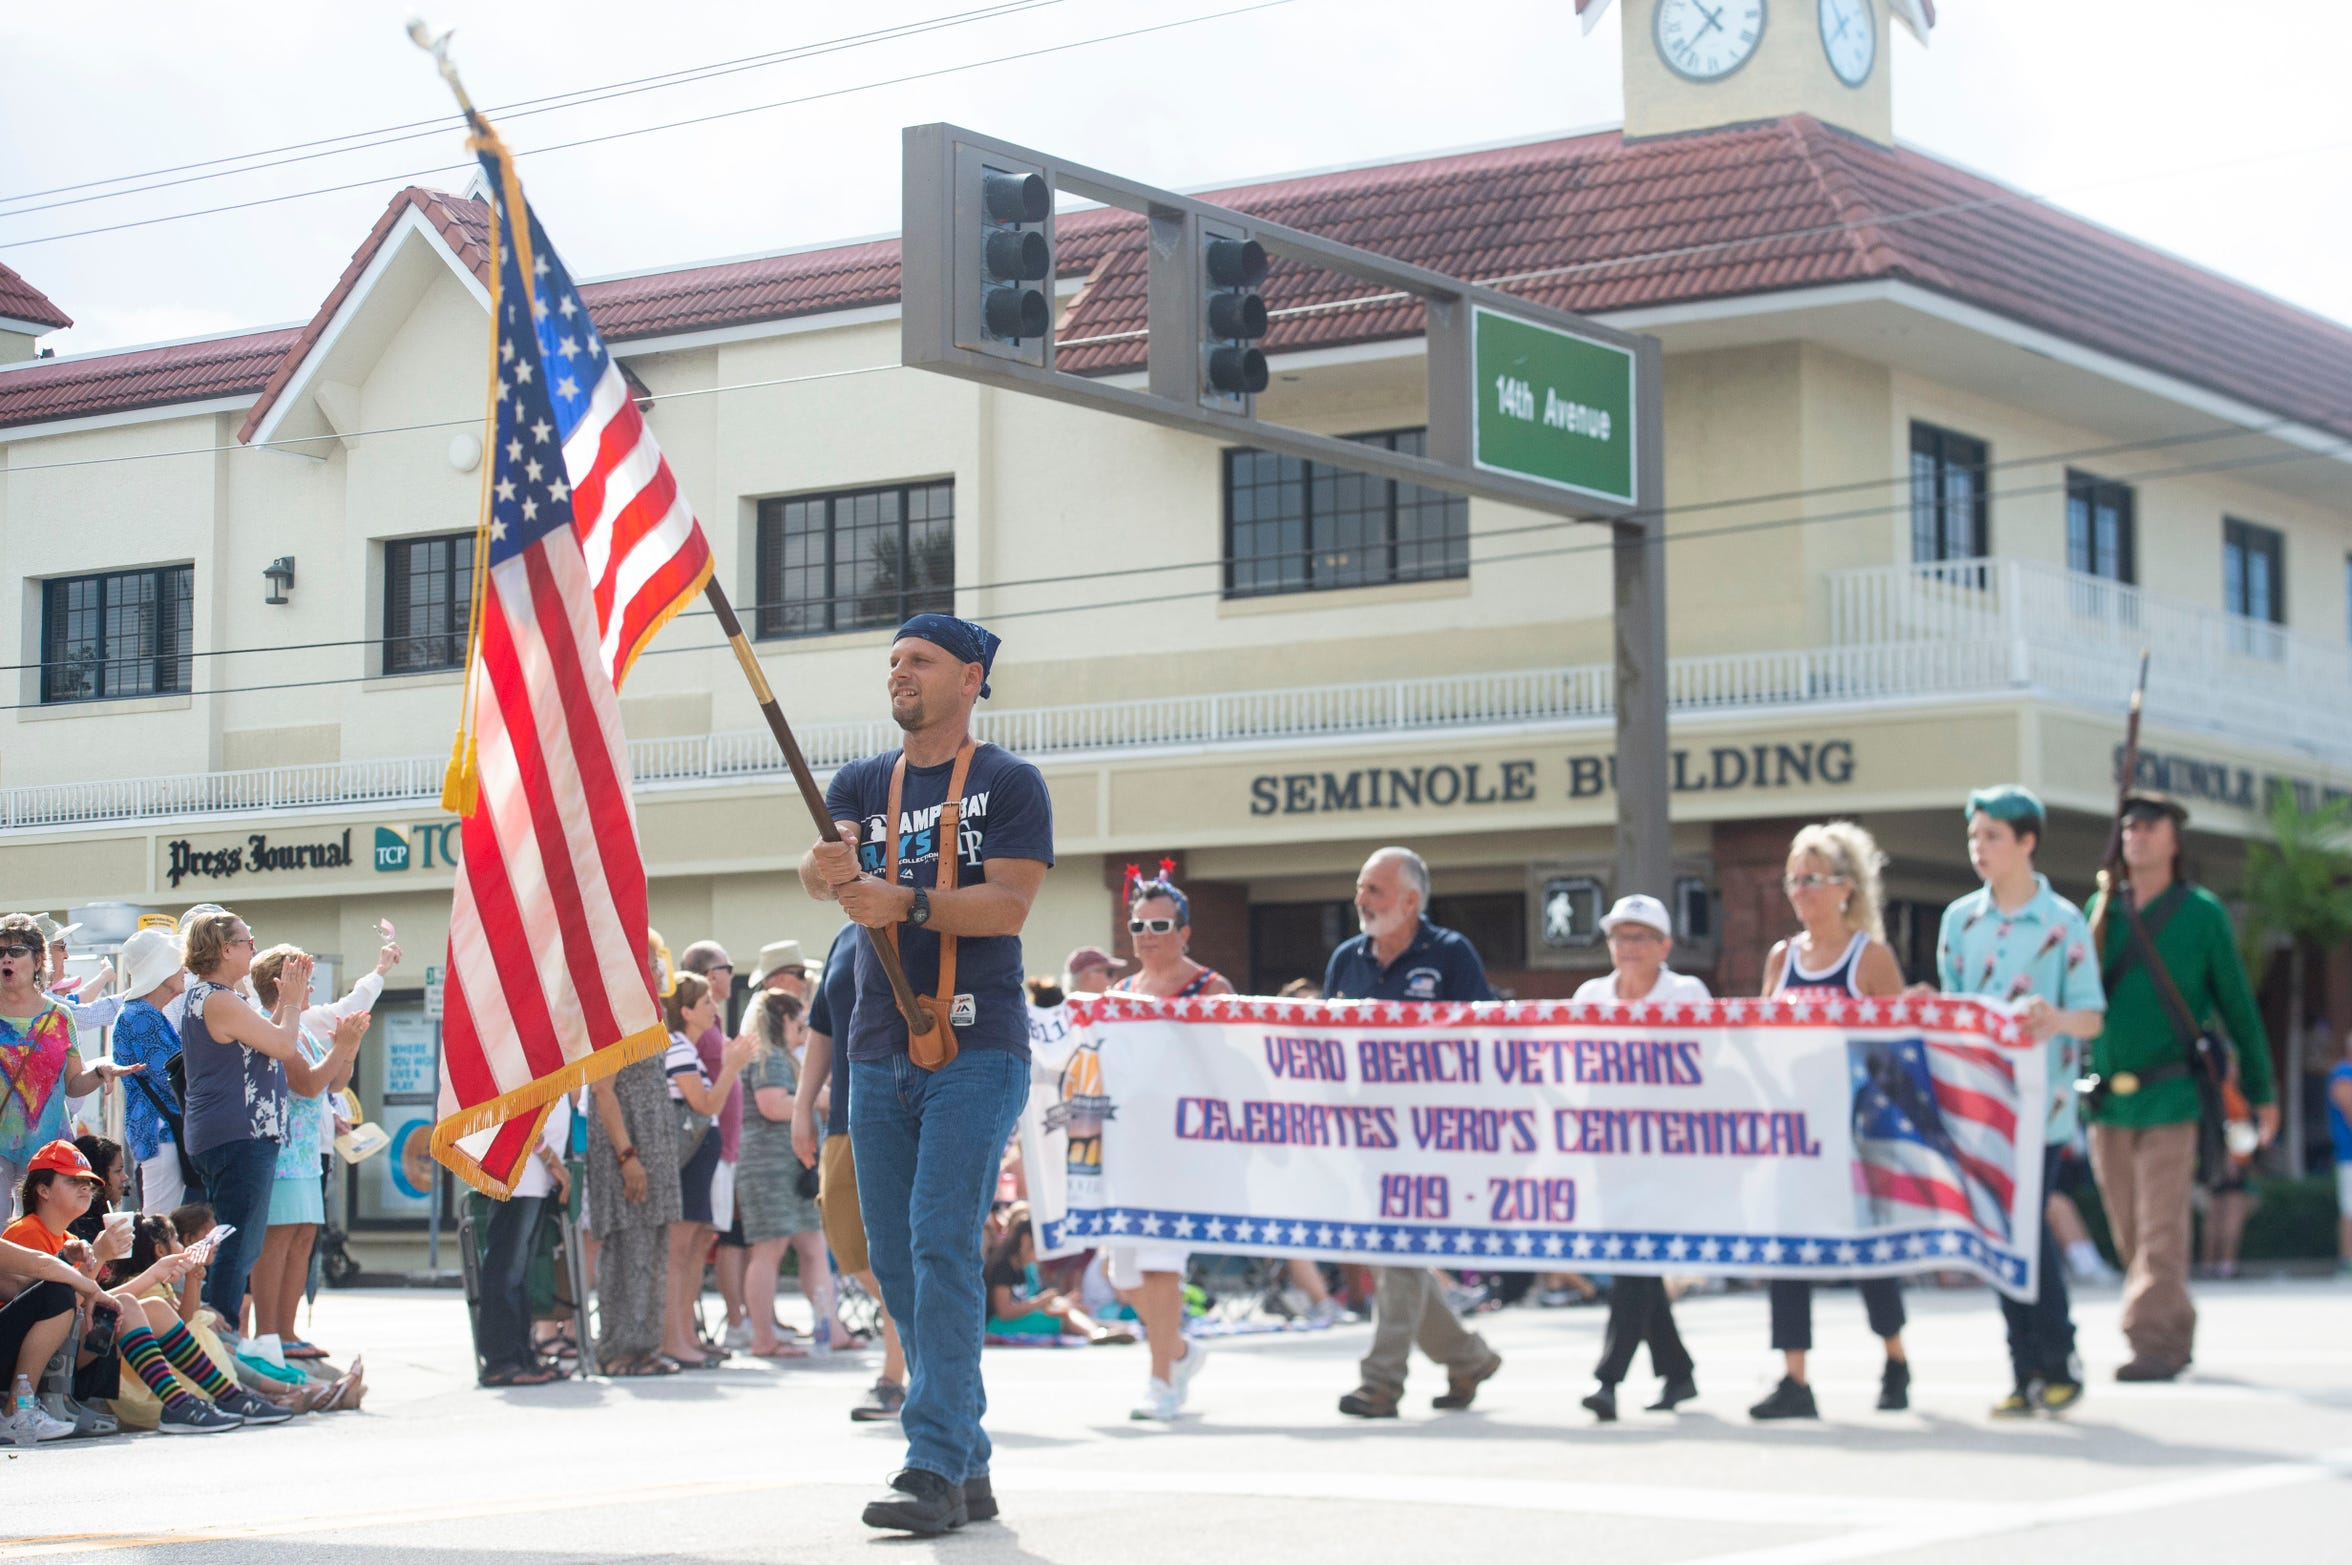 The Vero Beach Centennial Finale parade rolls down 14th Avenue on Saturday, Oct. 26, 2019, in downtown Vero Beach. About 100 businesses, schools, organizations, law enforcement agencies, churches and more marched from Vero Beach High School through downtown in celebration of Vero Beach's 100th birthday. The day-long event was cut short because of rain showers.